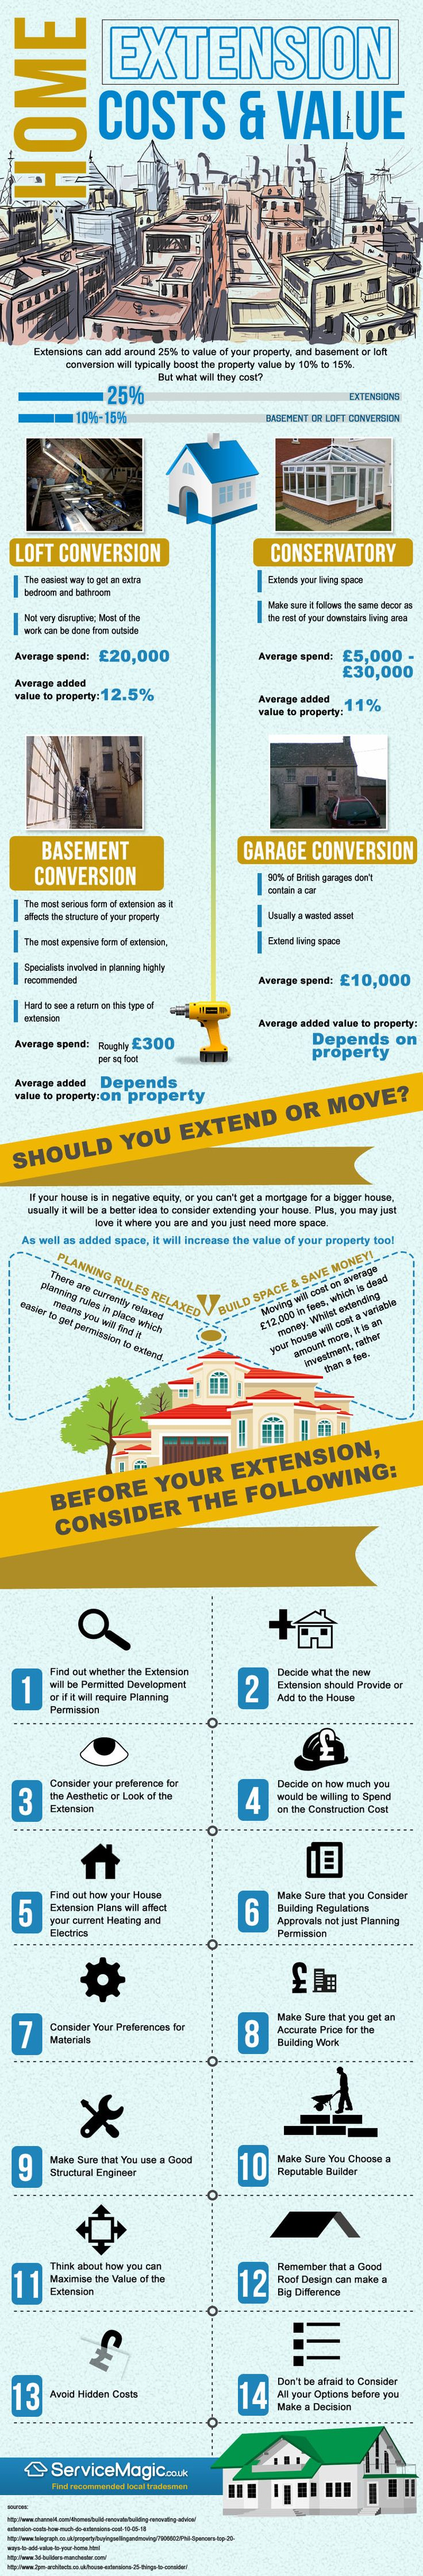 If you need a bit of extra space around the home but don't fancy packing up and moving, then why not think about a house extension? Adding an extra